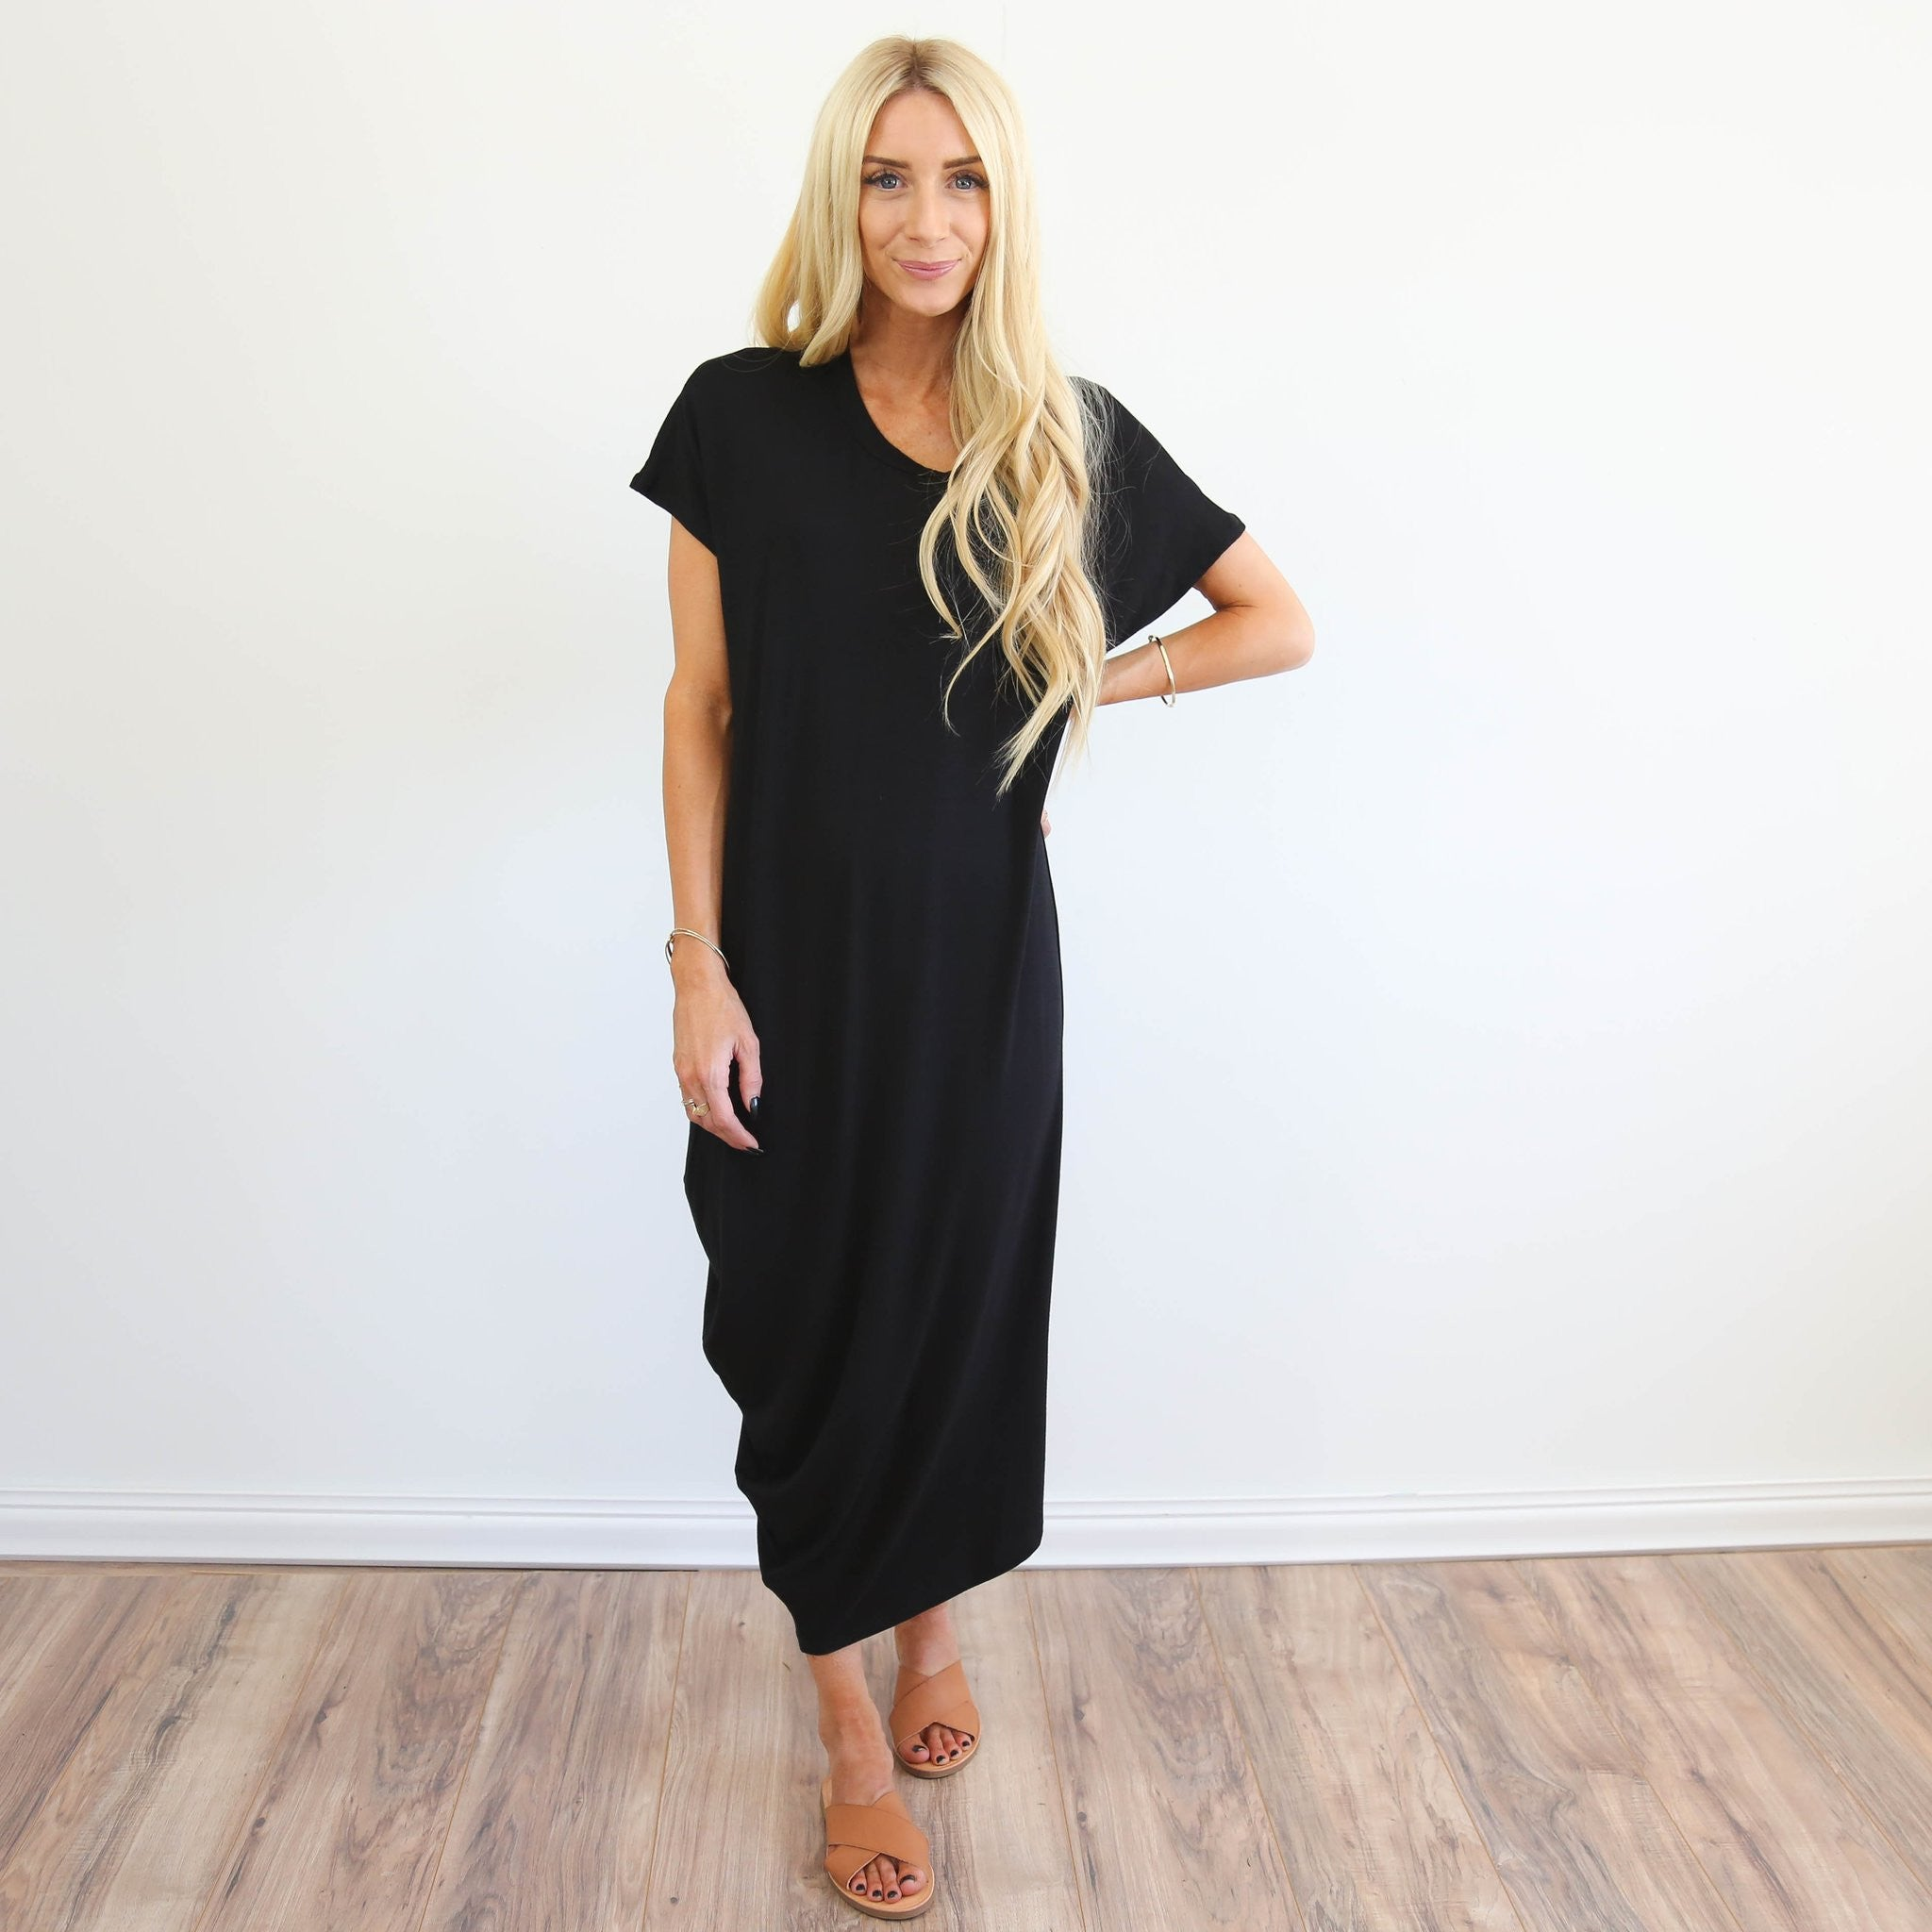 Dezie Black Dress